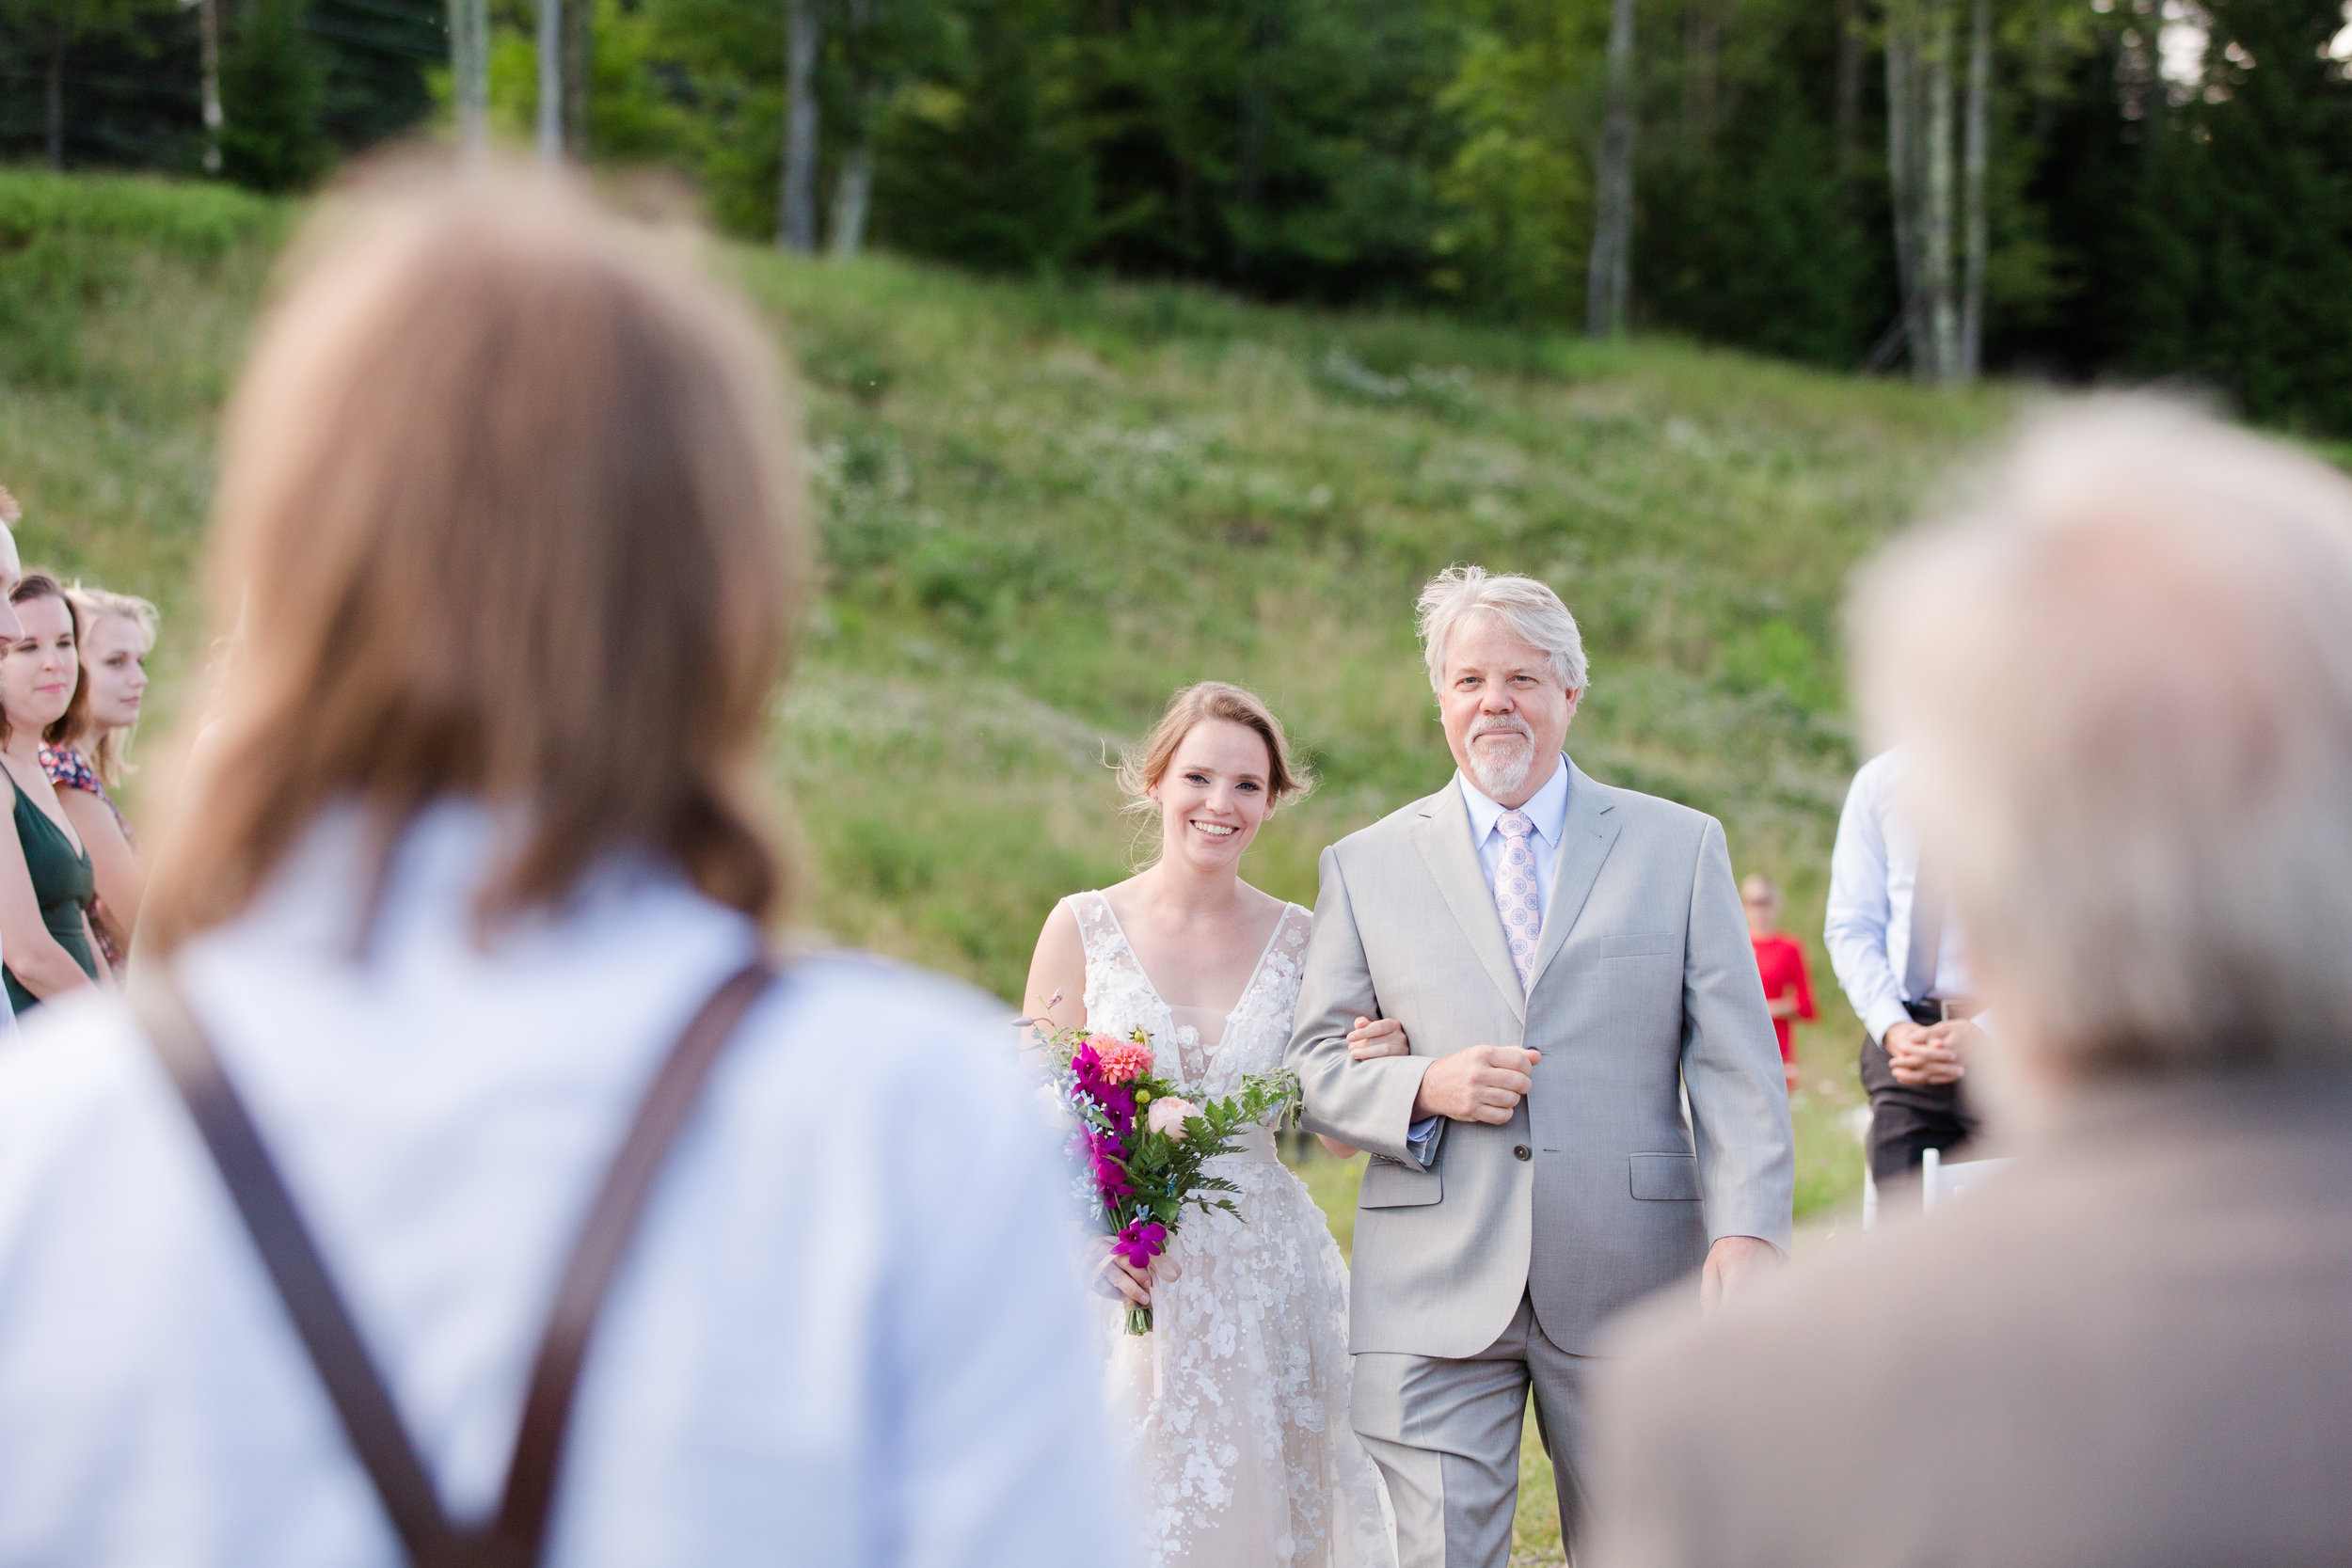 authentic genuine wedding photography in wv - bride escorted by father down aisle, lakeside mountain wedding wv